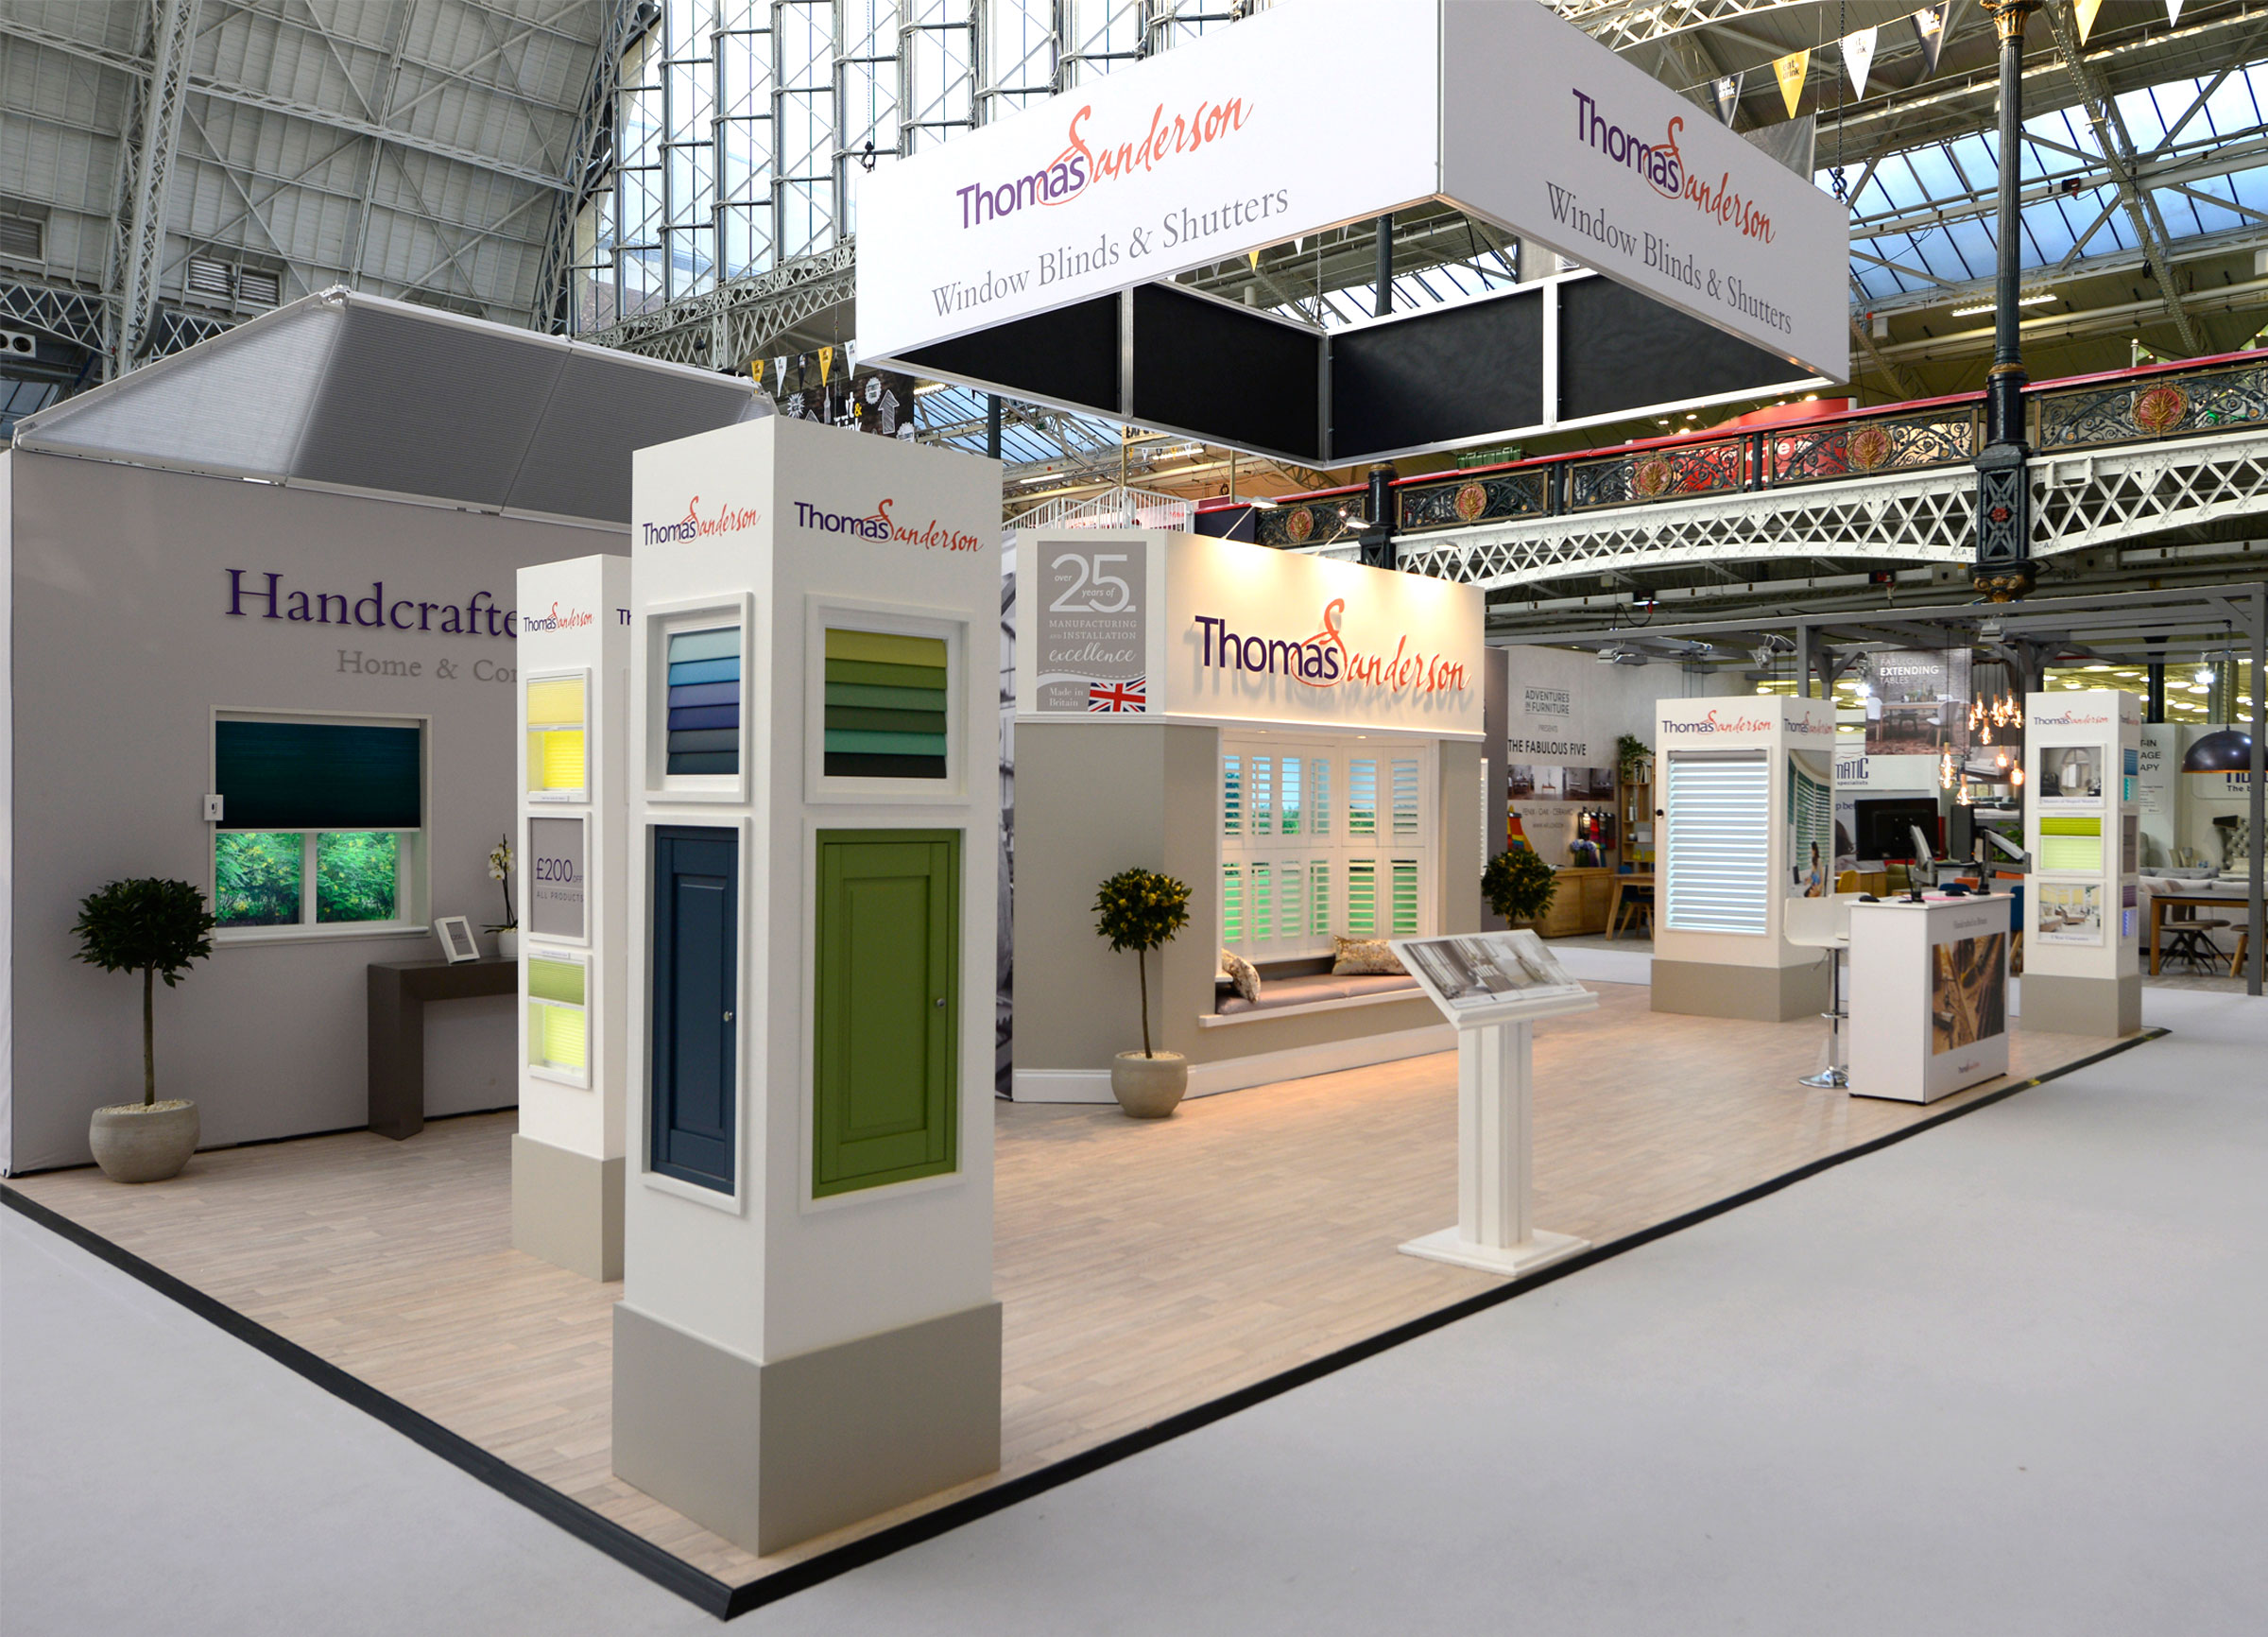 Exhibition Stand Graphic : Thomas sanderson exhibition stand graphics octink